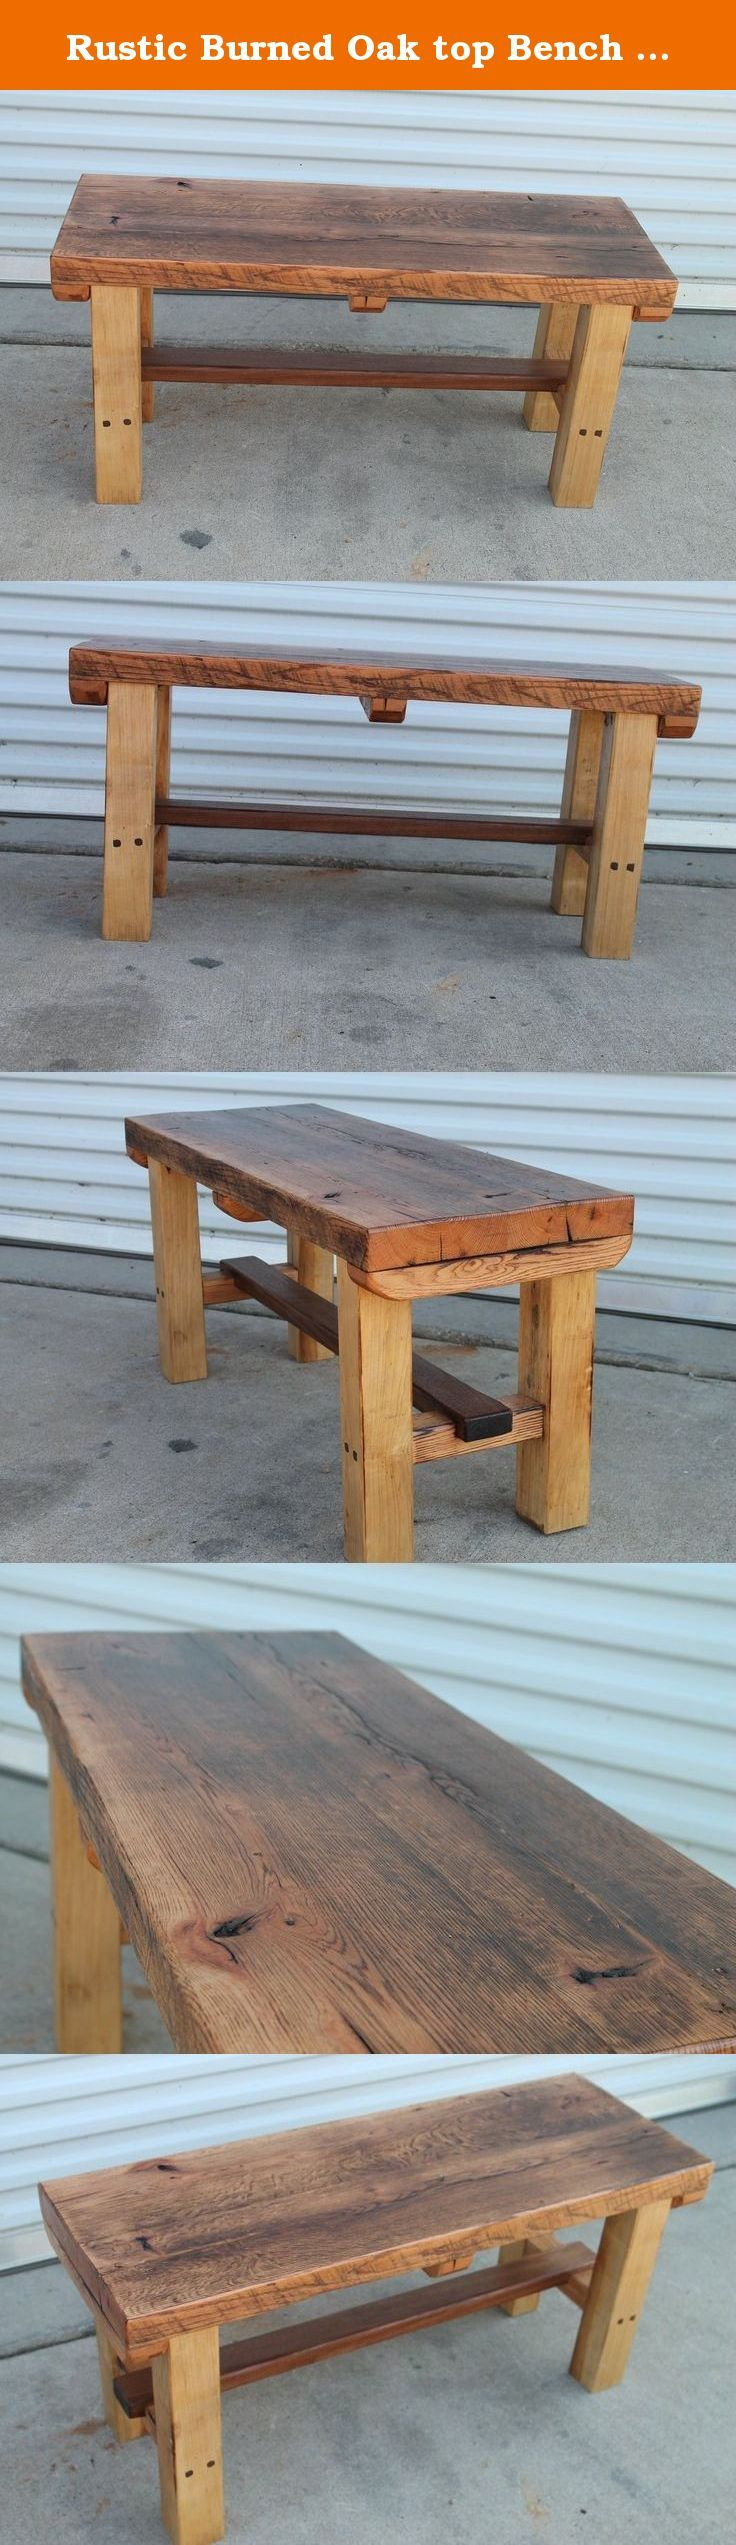 Rustic Burned Oak top Bench with Walnut Crossbar. Here's a rustic bench made for an entryway or even to sit at the base of a bed. This has a reclaimed oak top that was burned and distressed. The bottom has a walnut crossbar and walnut square pegs. Nothing fancy, just great functional and rustic!.